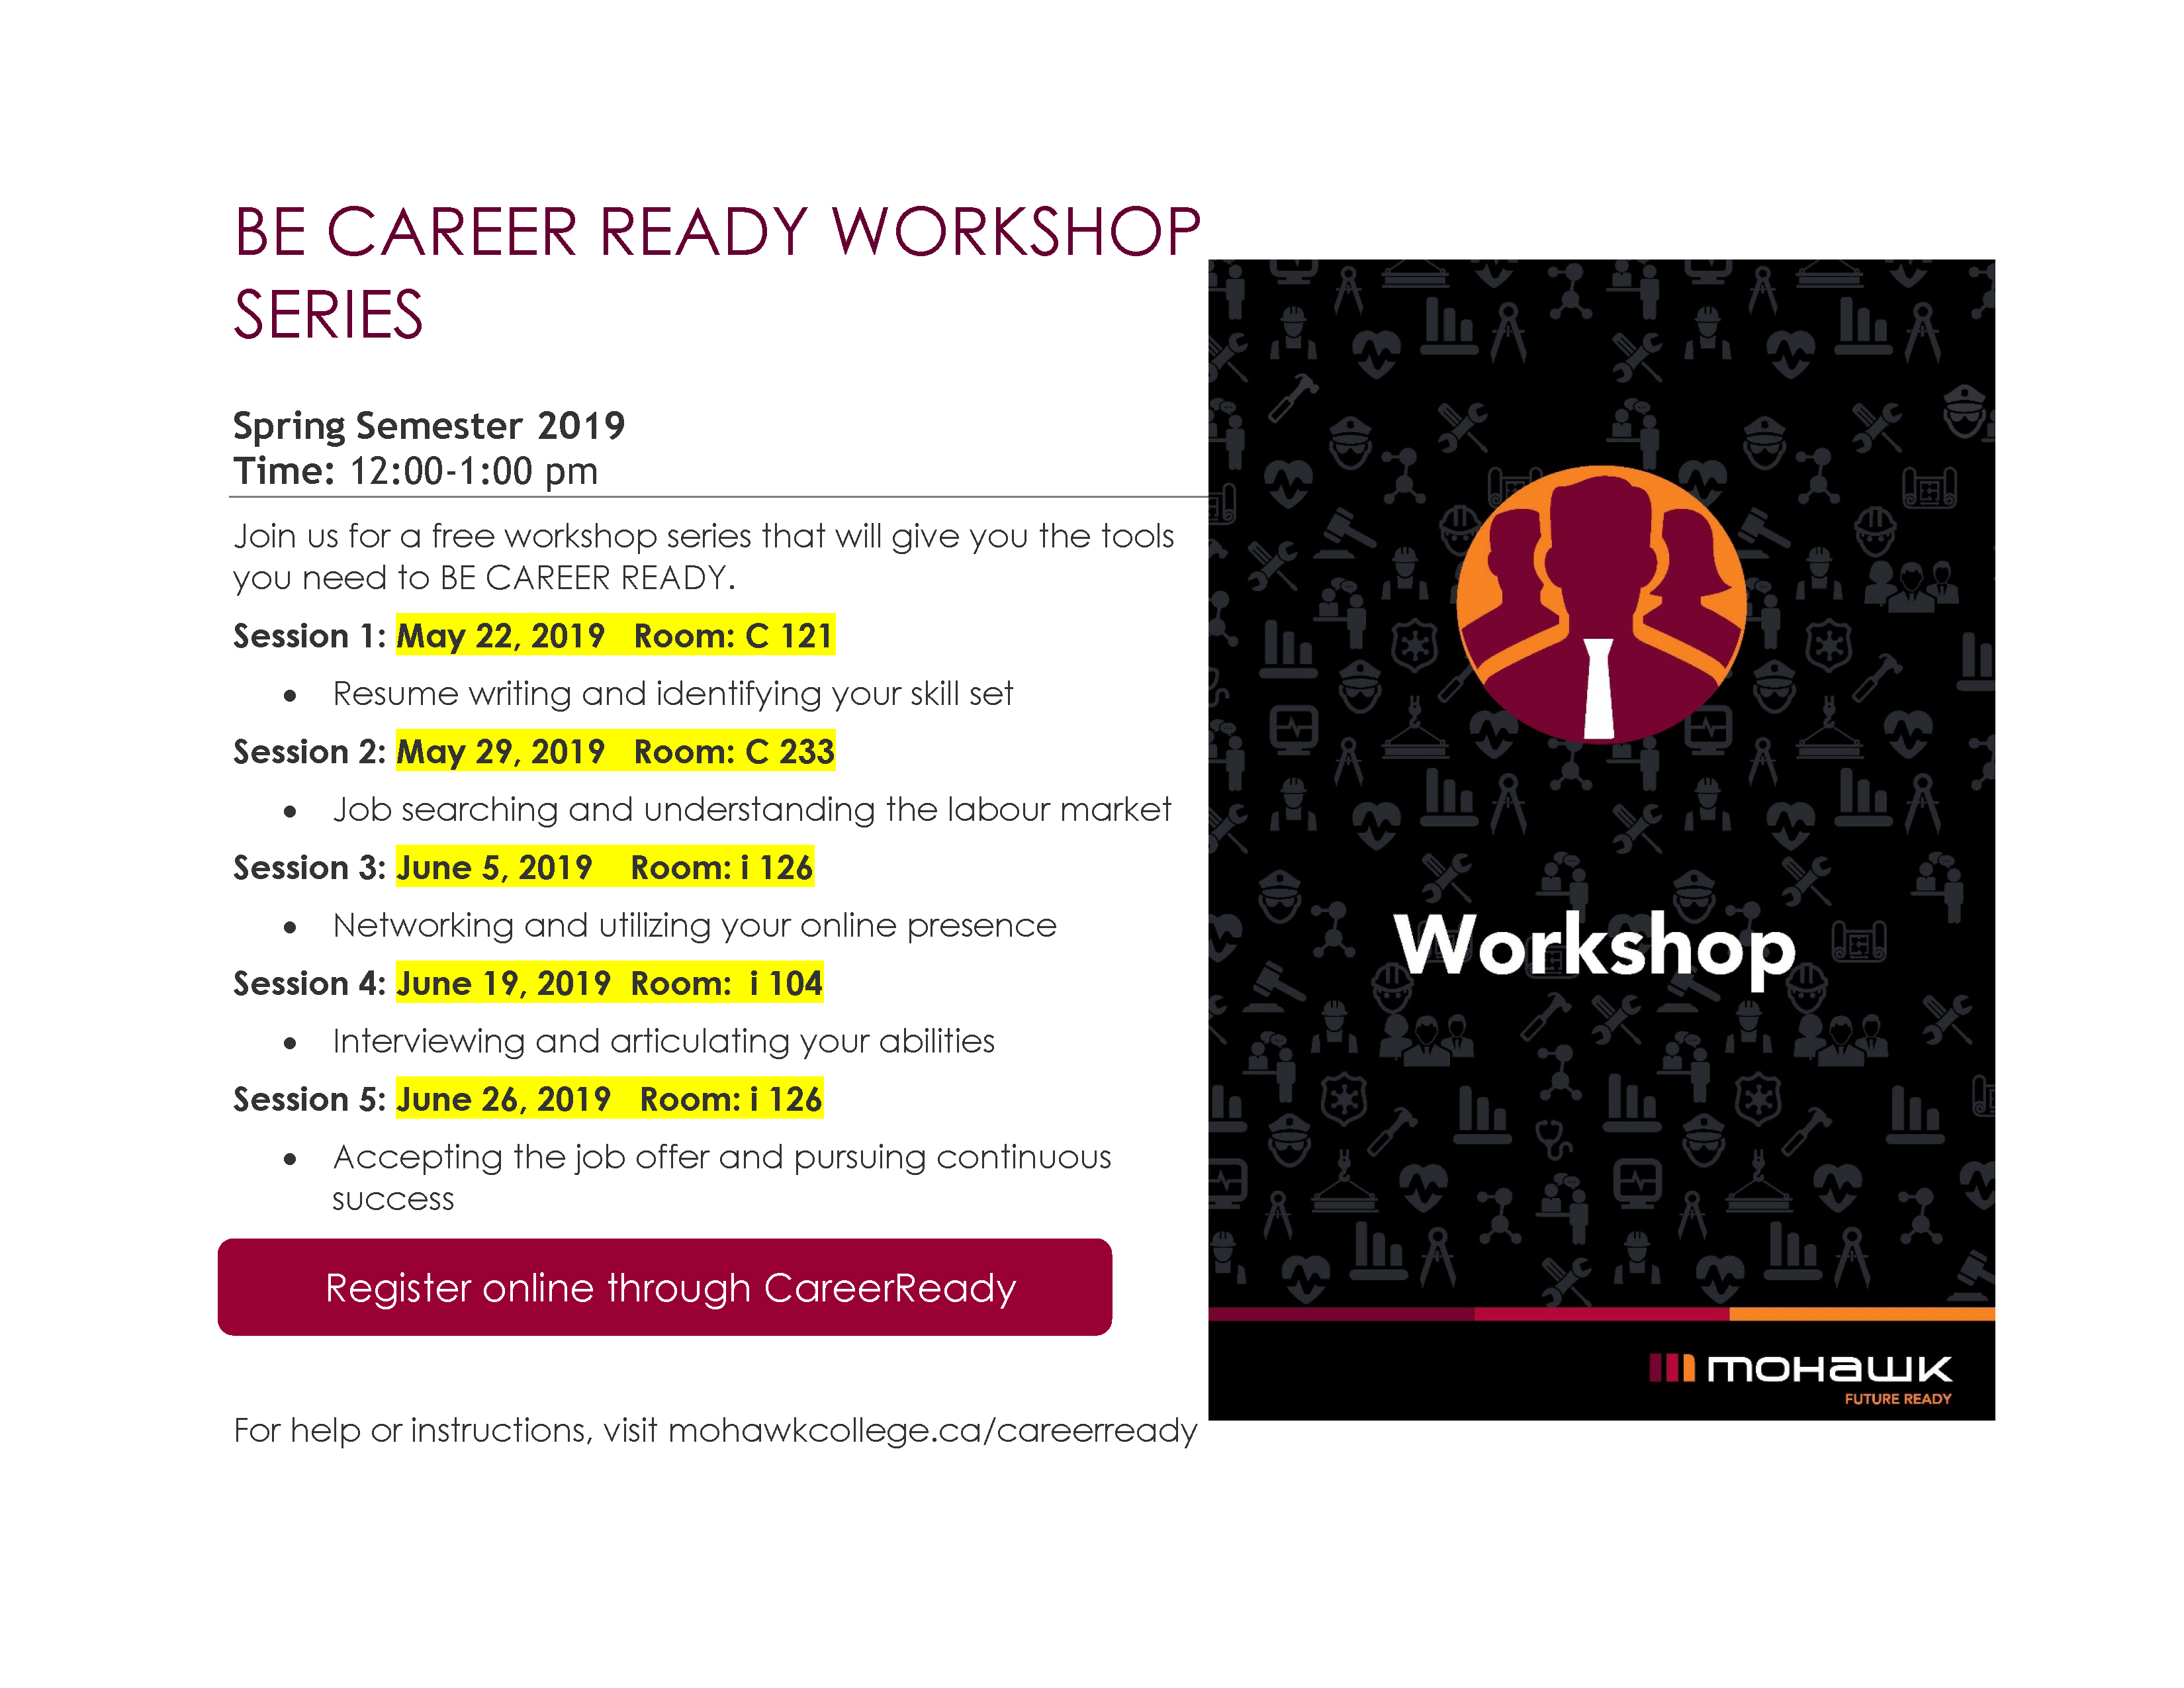 BE CAREER READY WORKSHOP SERIES Spring Semester 2019 Time: 12:00-1:00 pm Join us for a free workshop series that will give you the tools you need to BE CAREER READY.  Session 2: May 29, 2019 Room: C 233 • Job searching and understanding the labour market